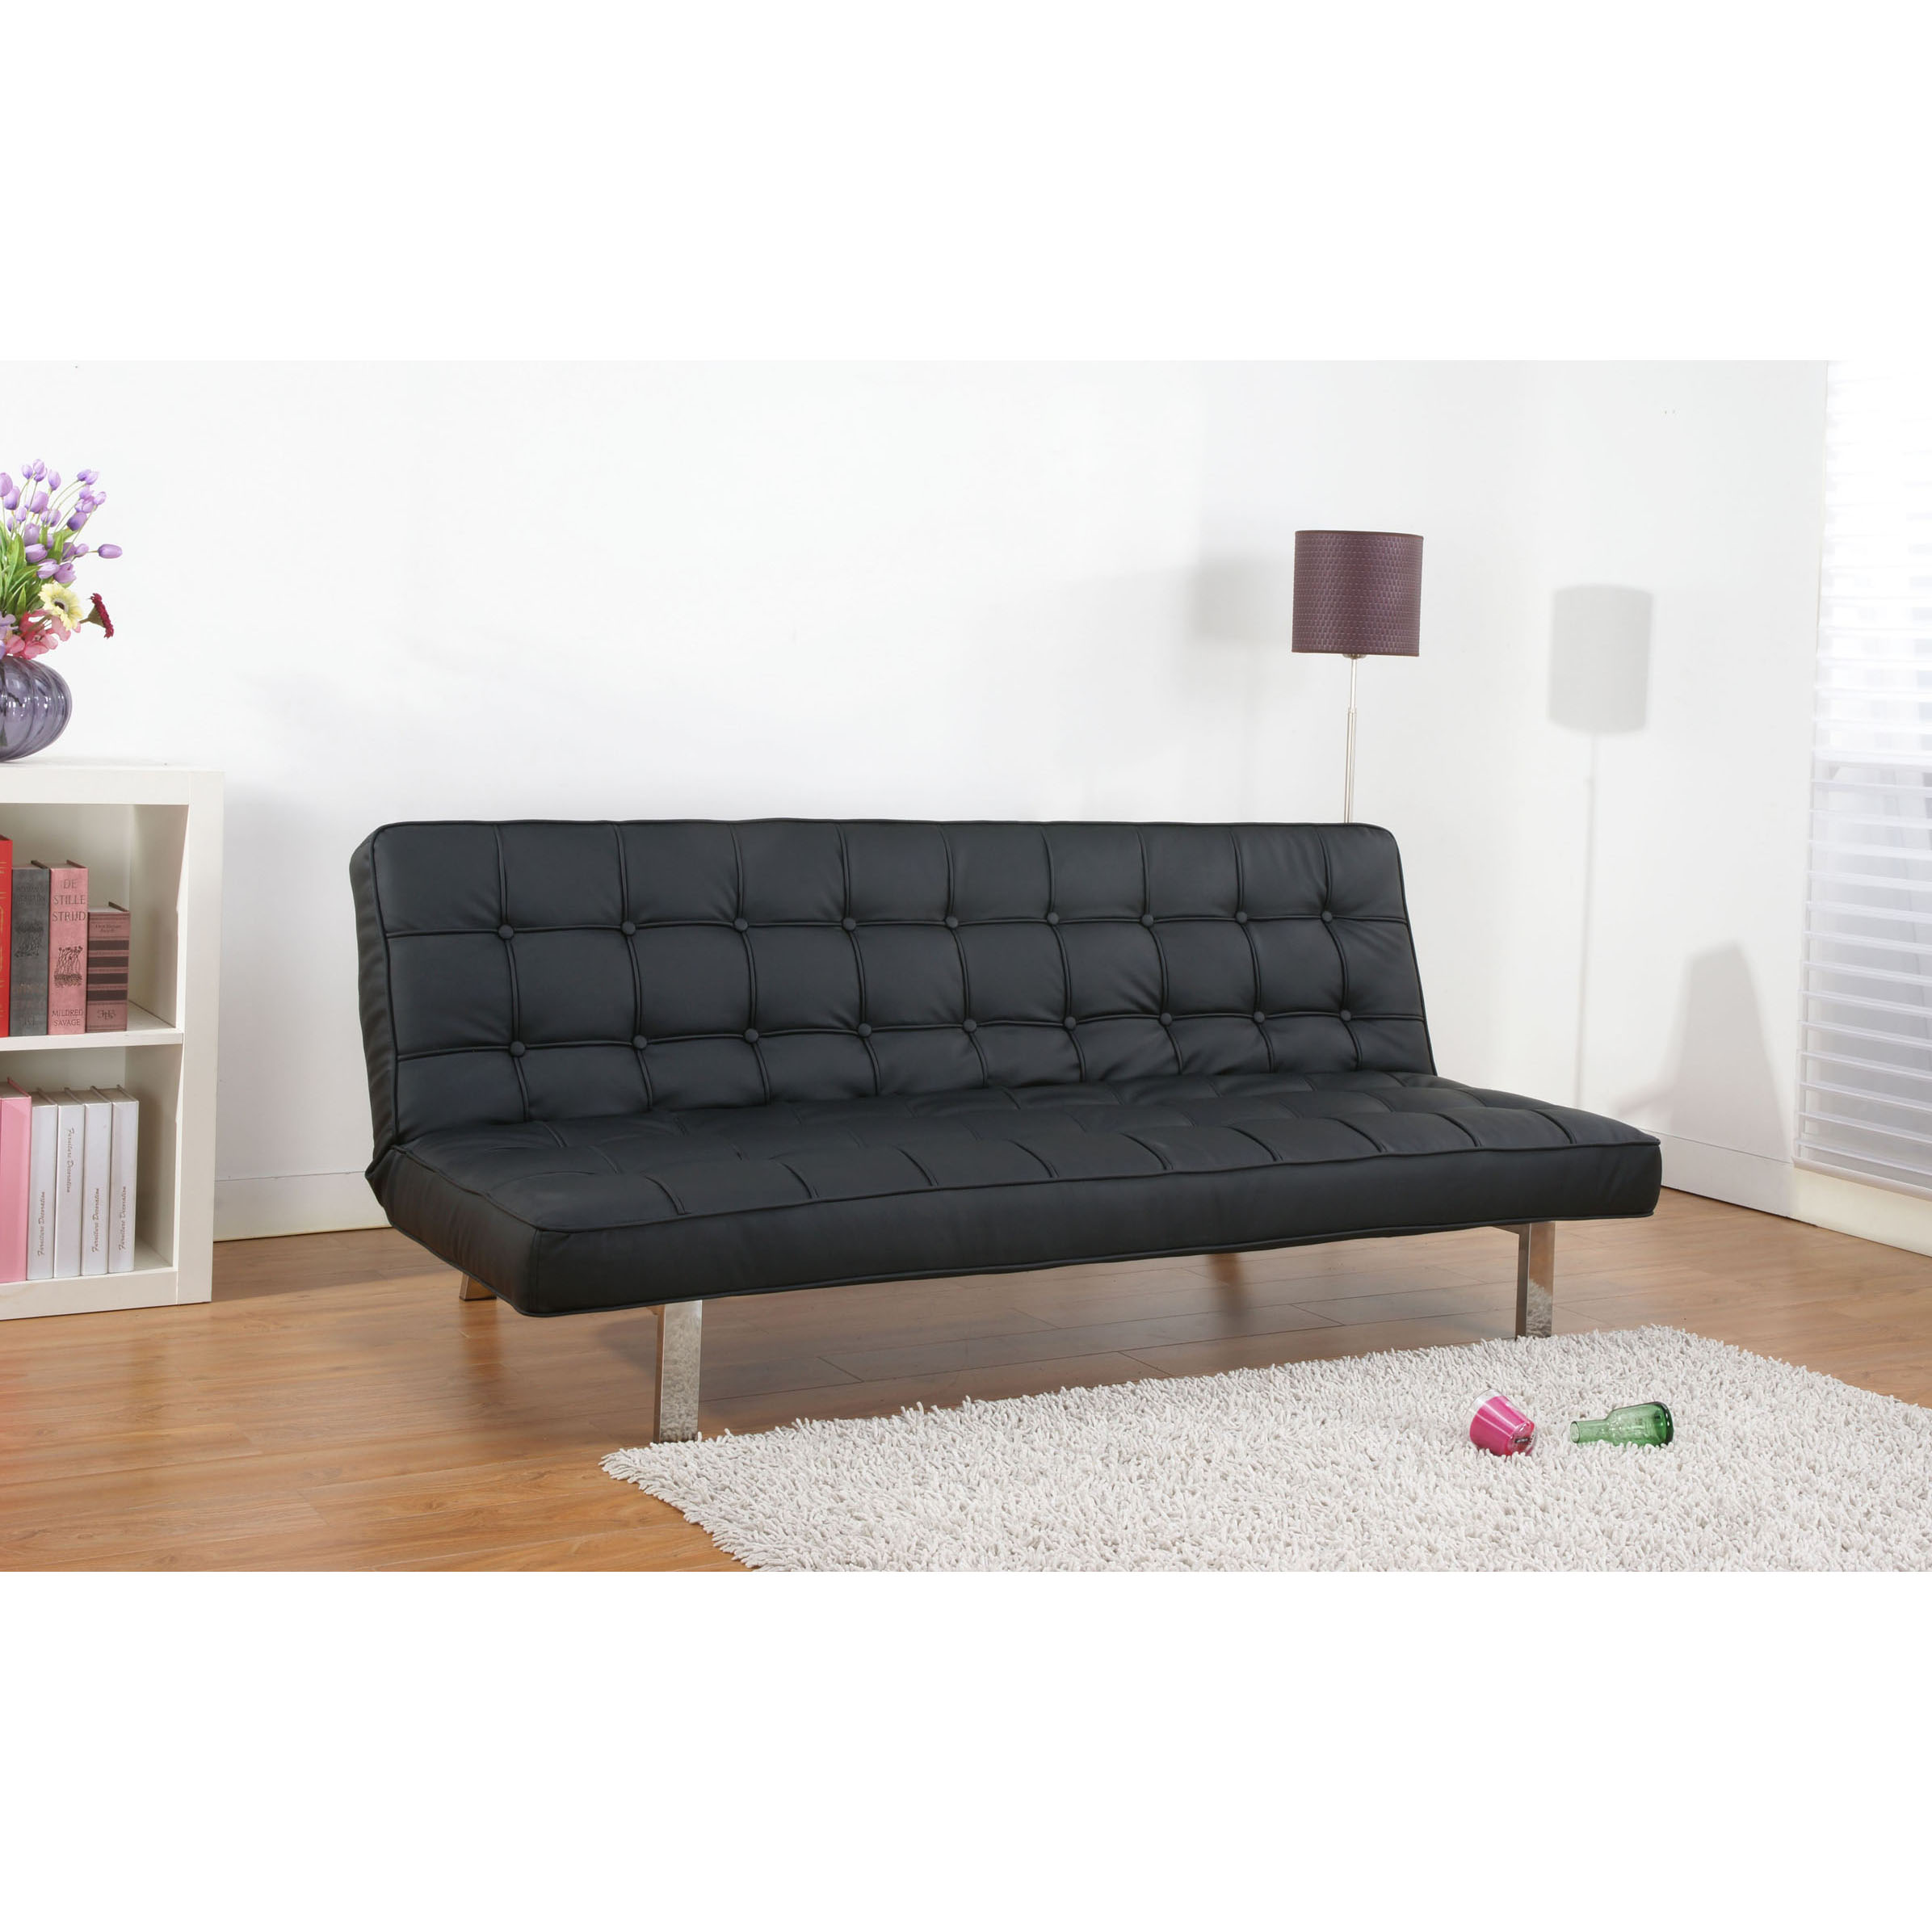 Comfortable Cheap Futons For Inspiring Home Furniture Ideas Black With Silver Legs On